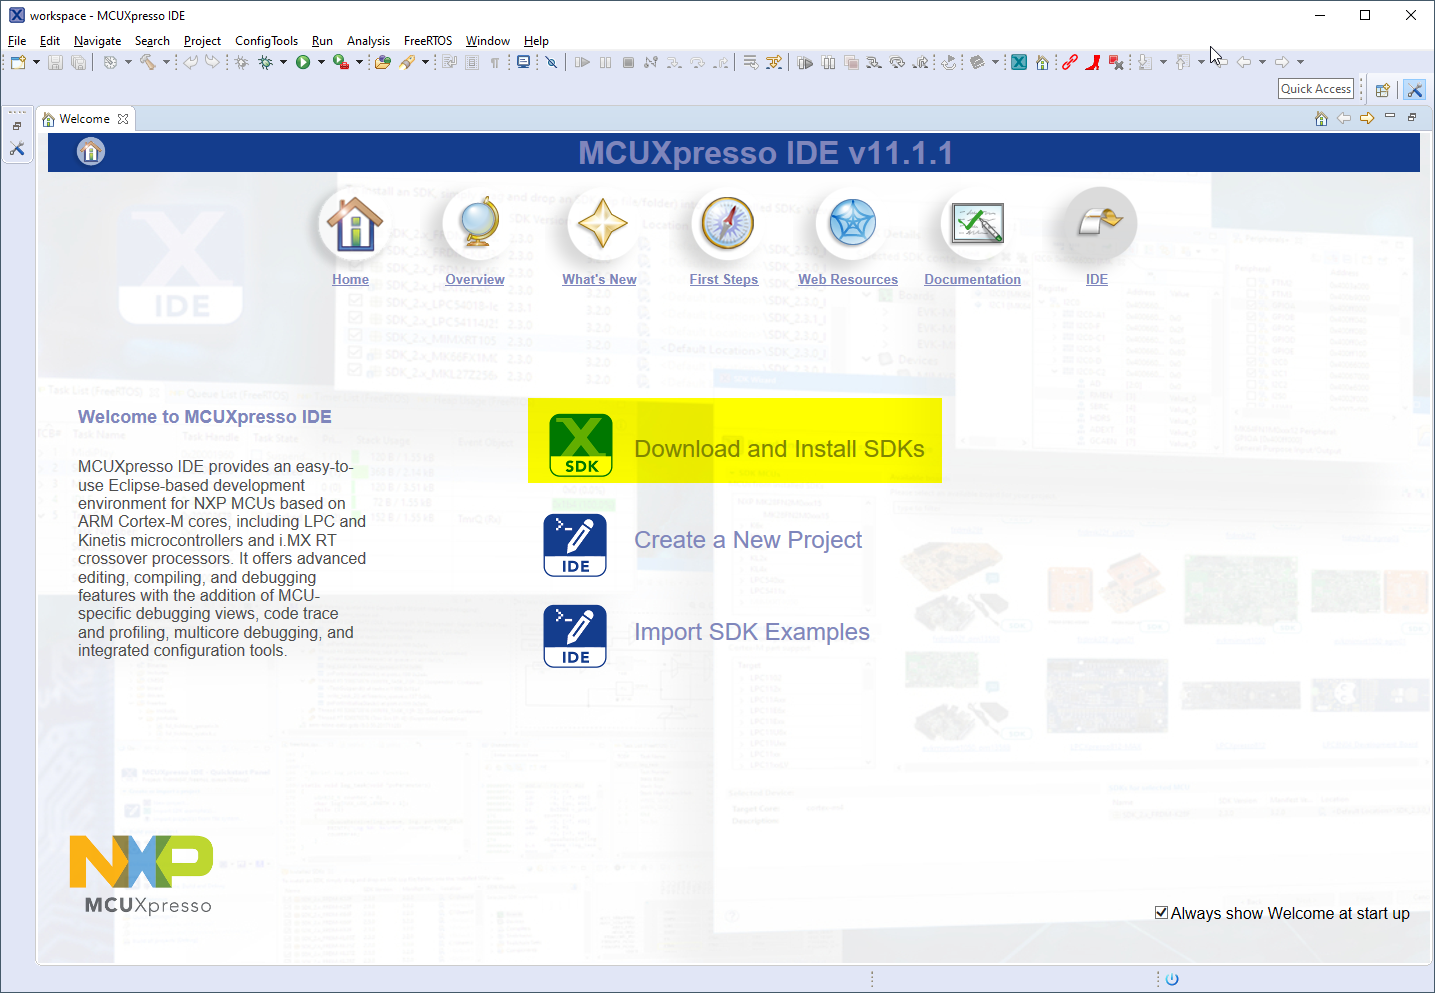 2020-05-31-16_51_55-workspace---MCUXpresso-IDE.png